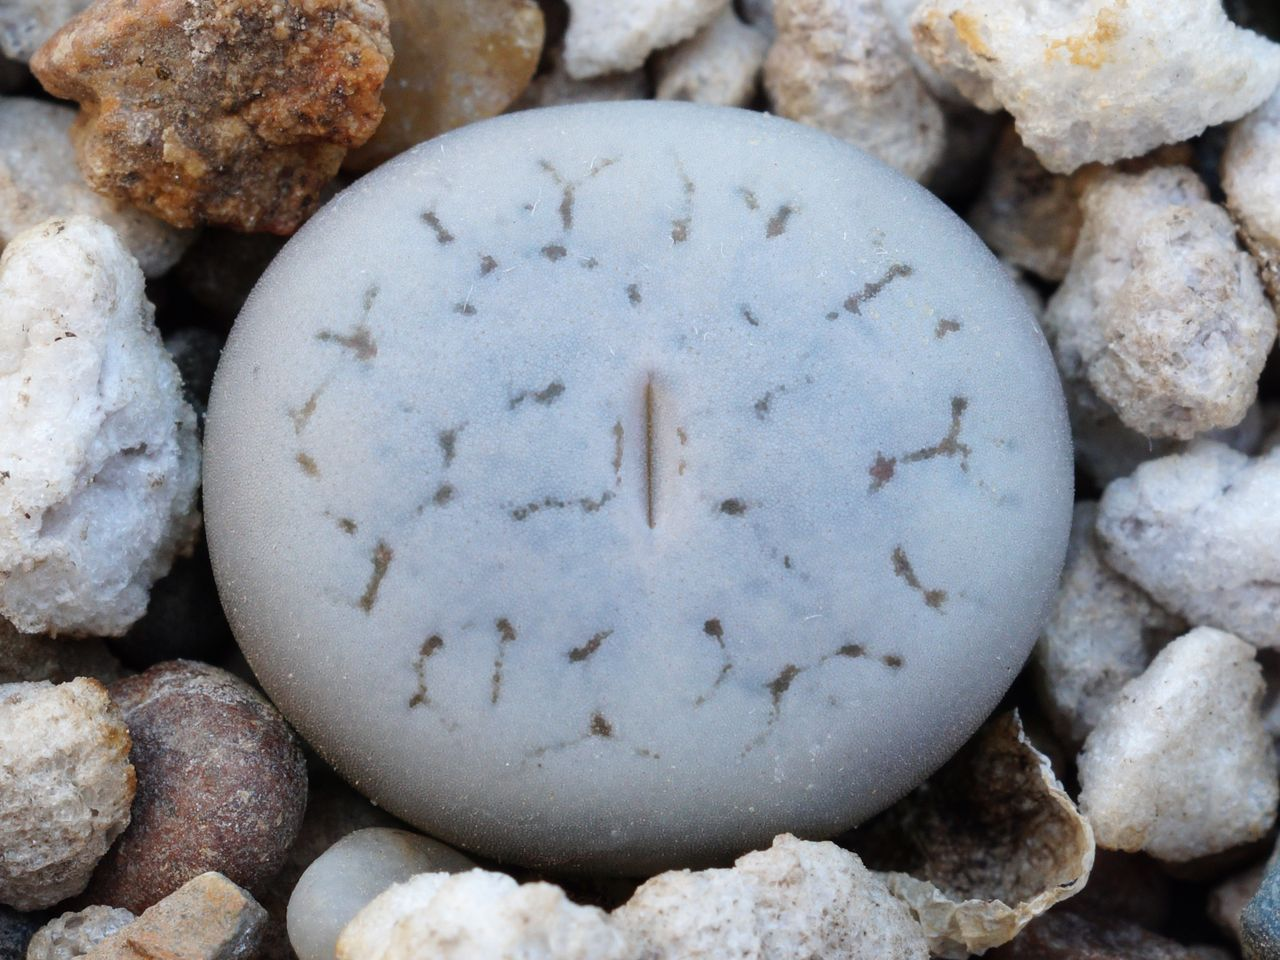 Lithops gracilidelineata C 367